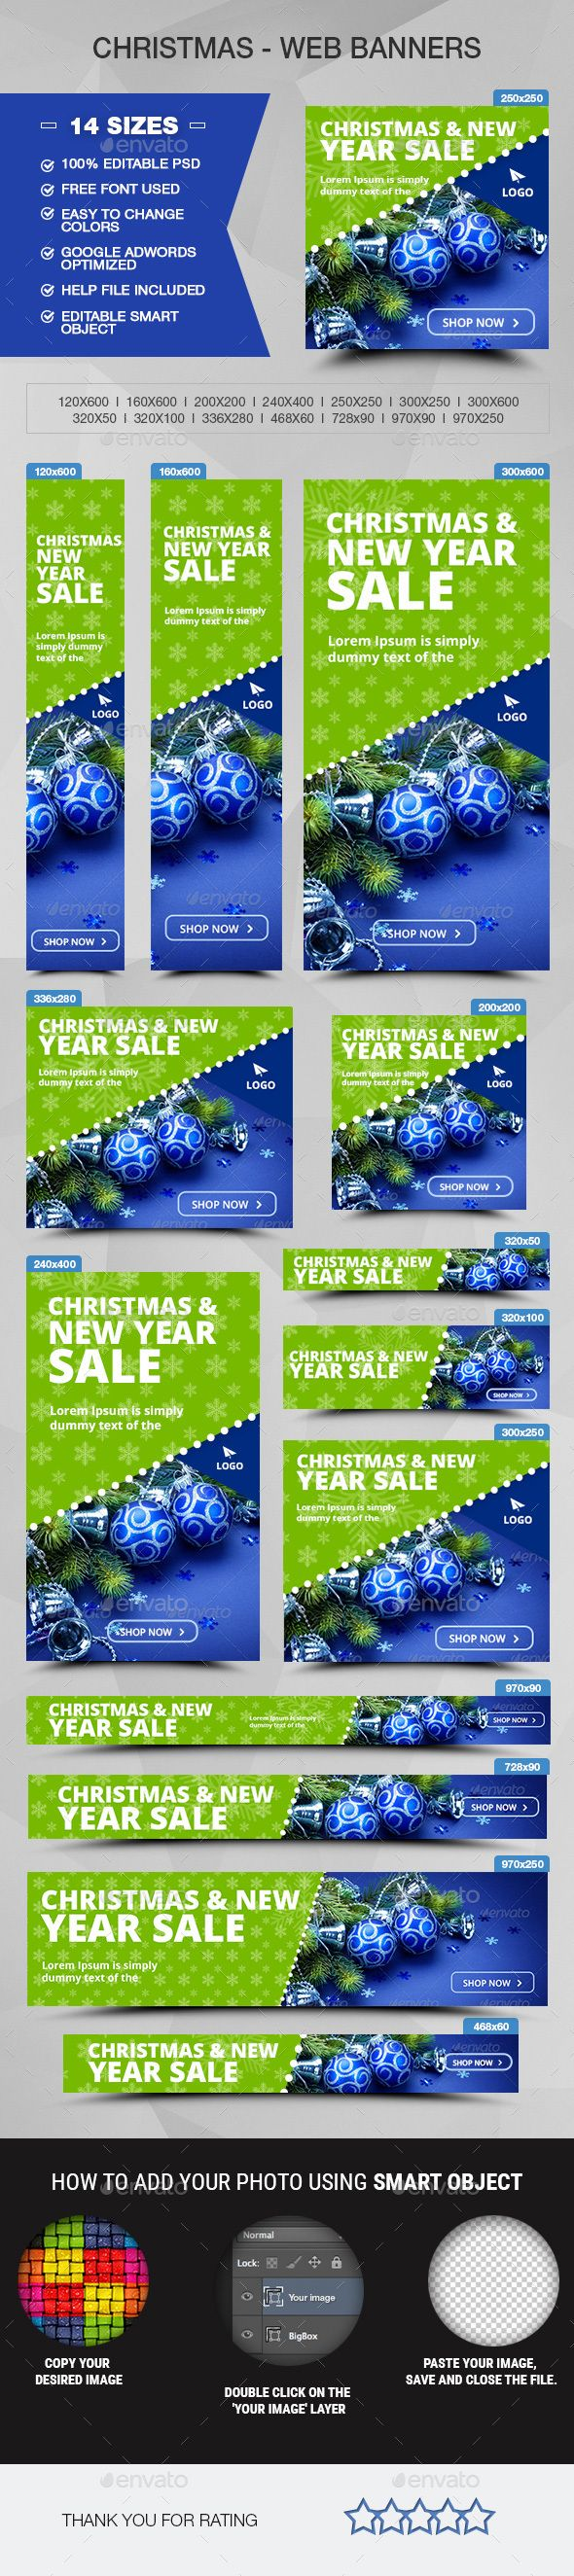 Design banner template - Christmas Sale Banners